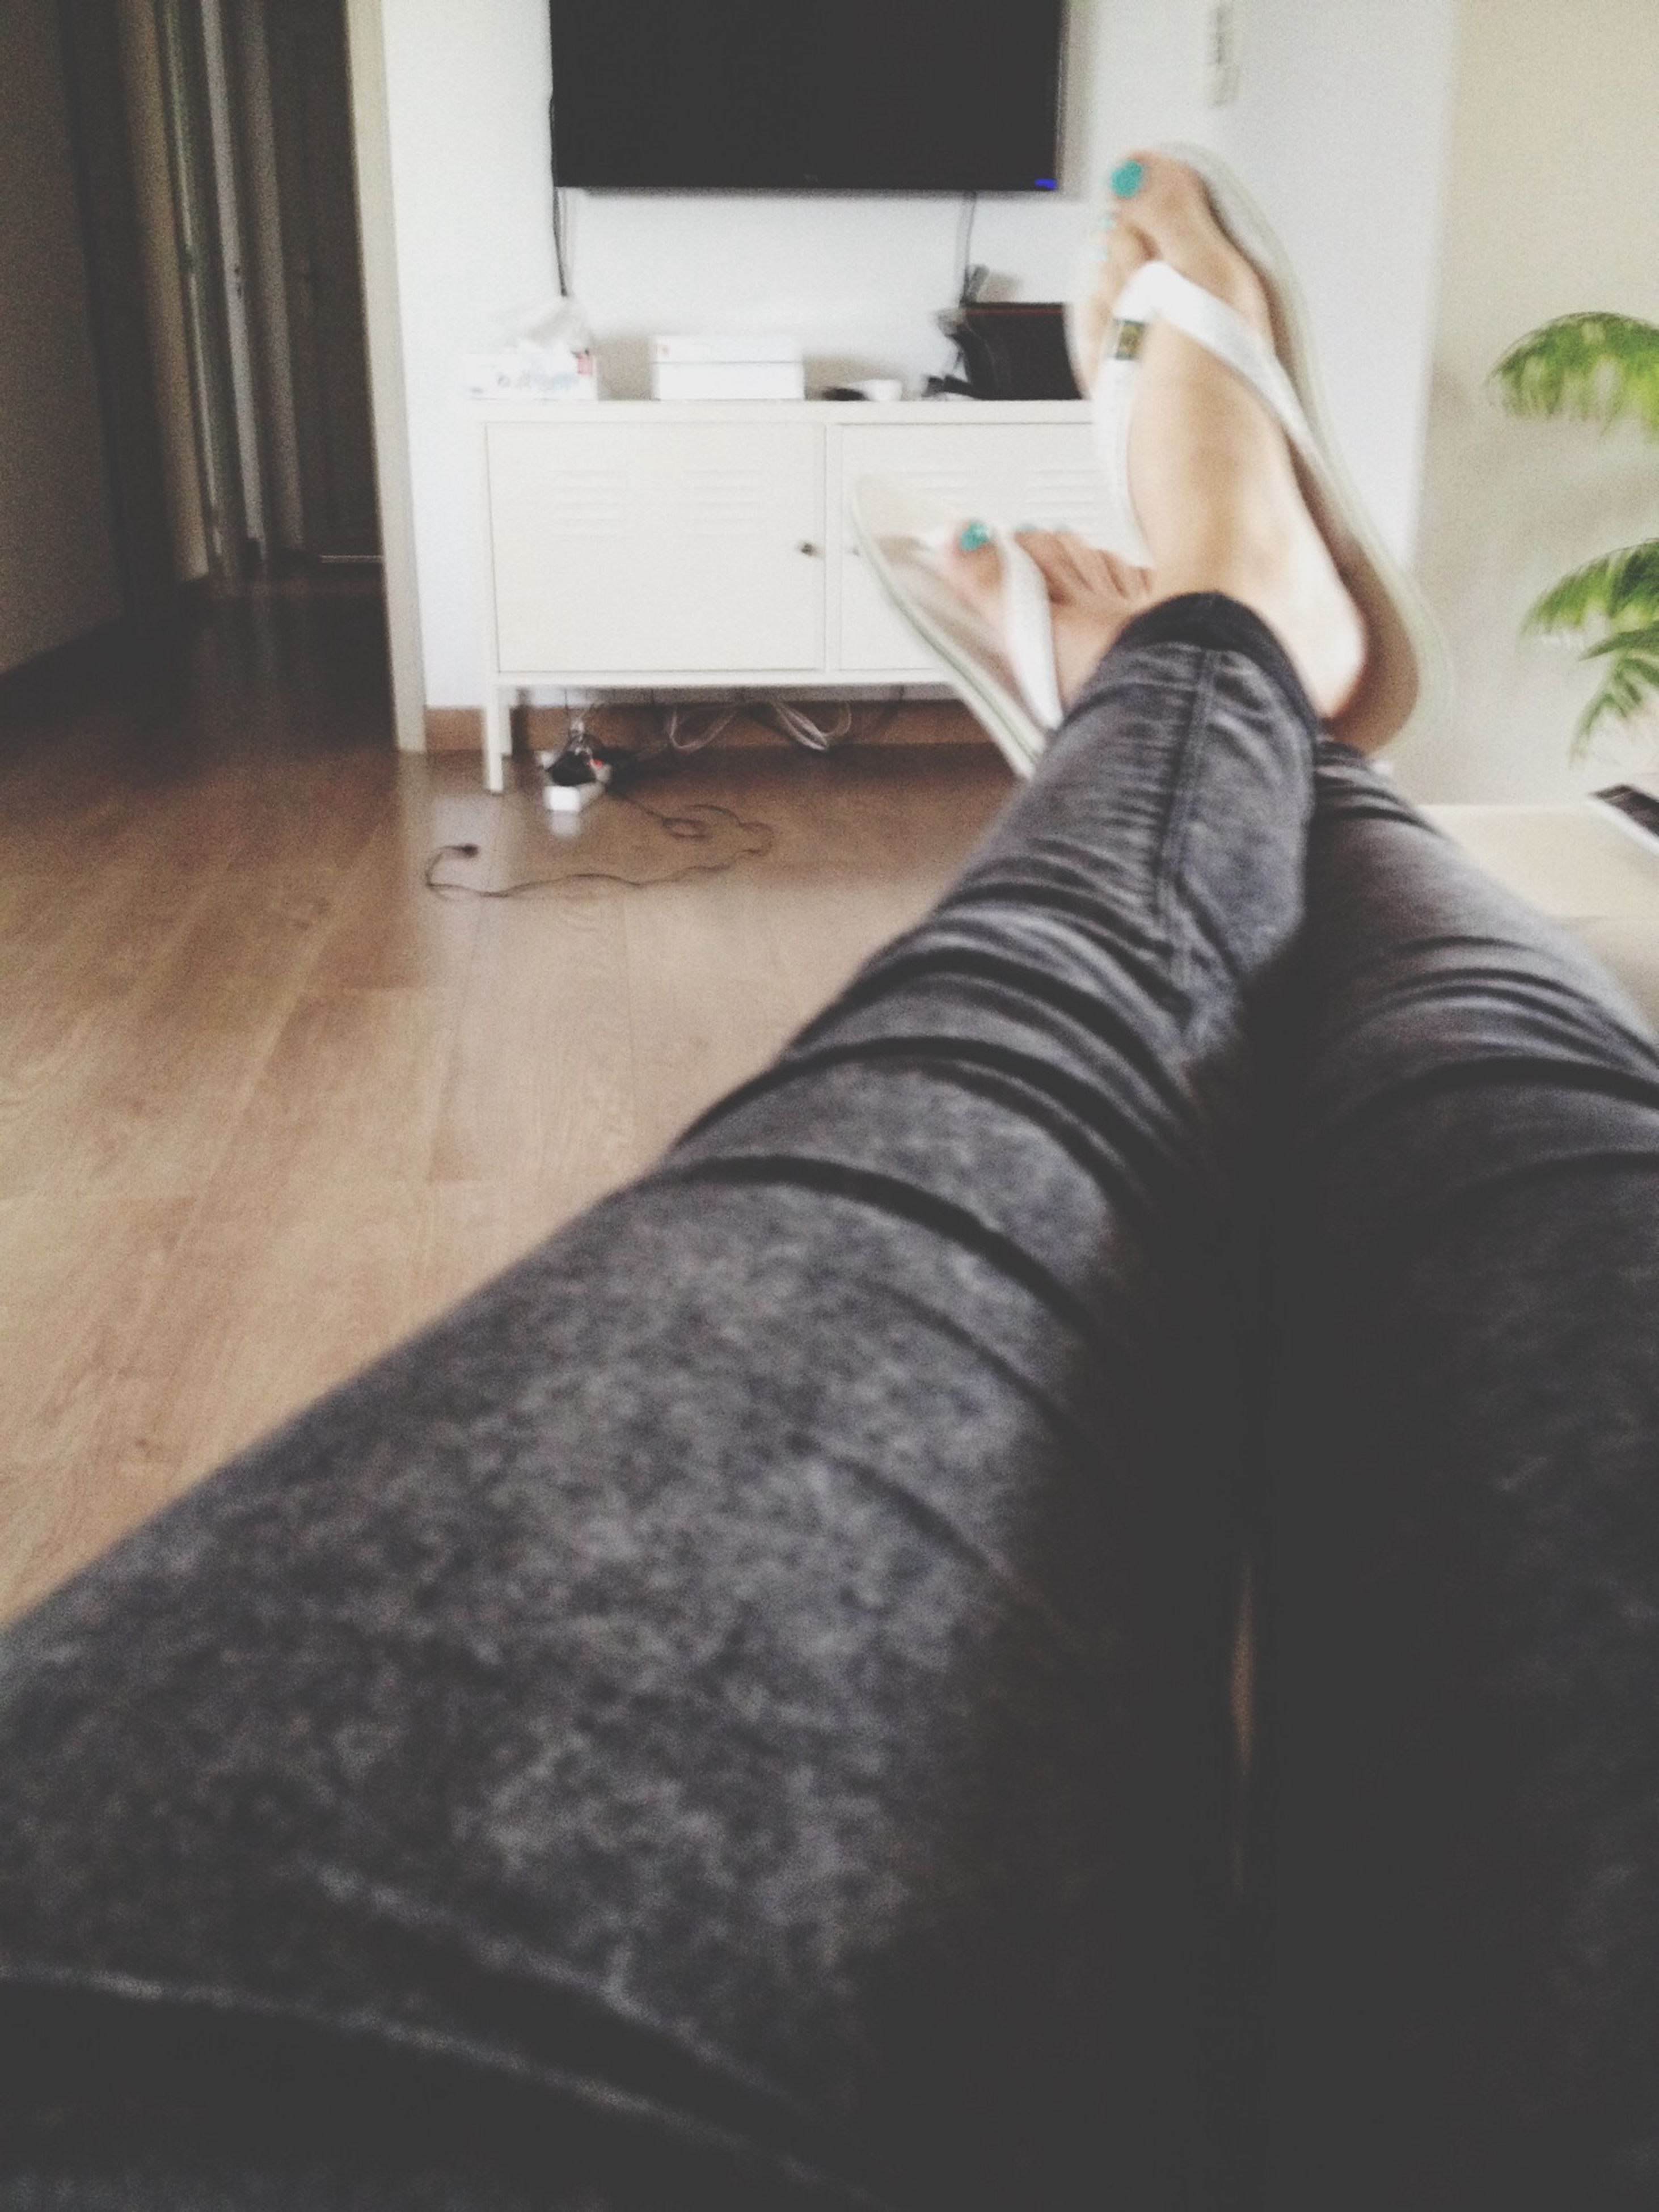 low section, person, indoors, lifestyles, sitting, shoe, leisure activity, human foot, standing, relaxation, home interior, personal perspective, casual clothing, barefoot, flooring, legs crossed at ankle